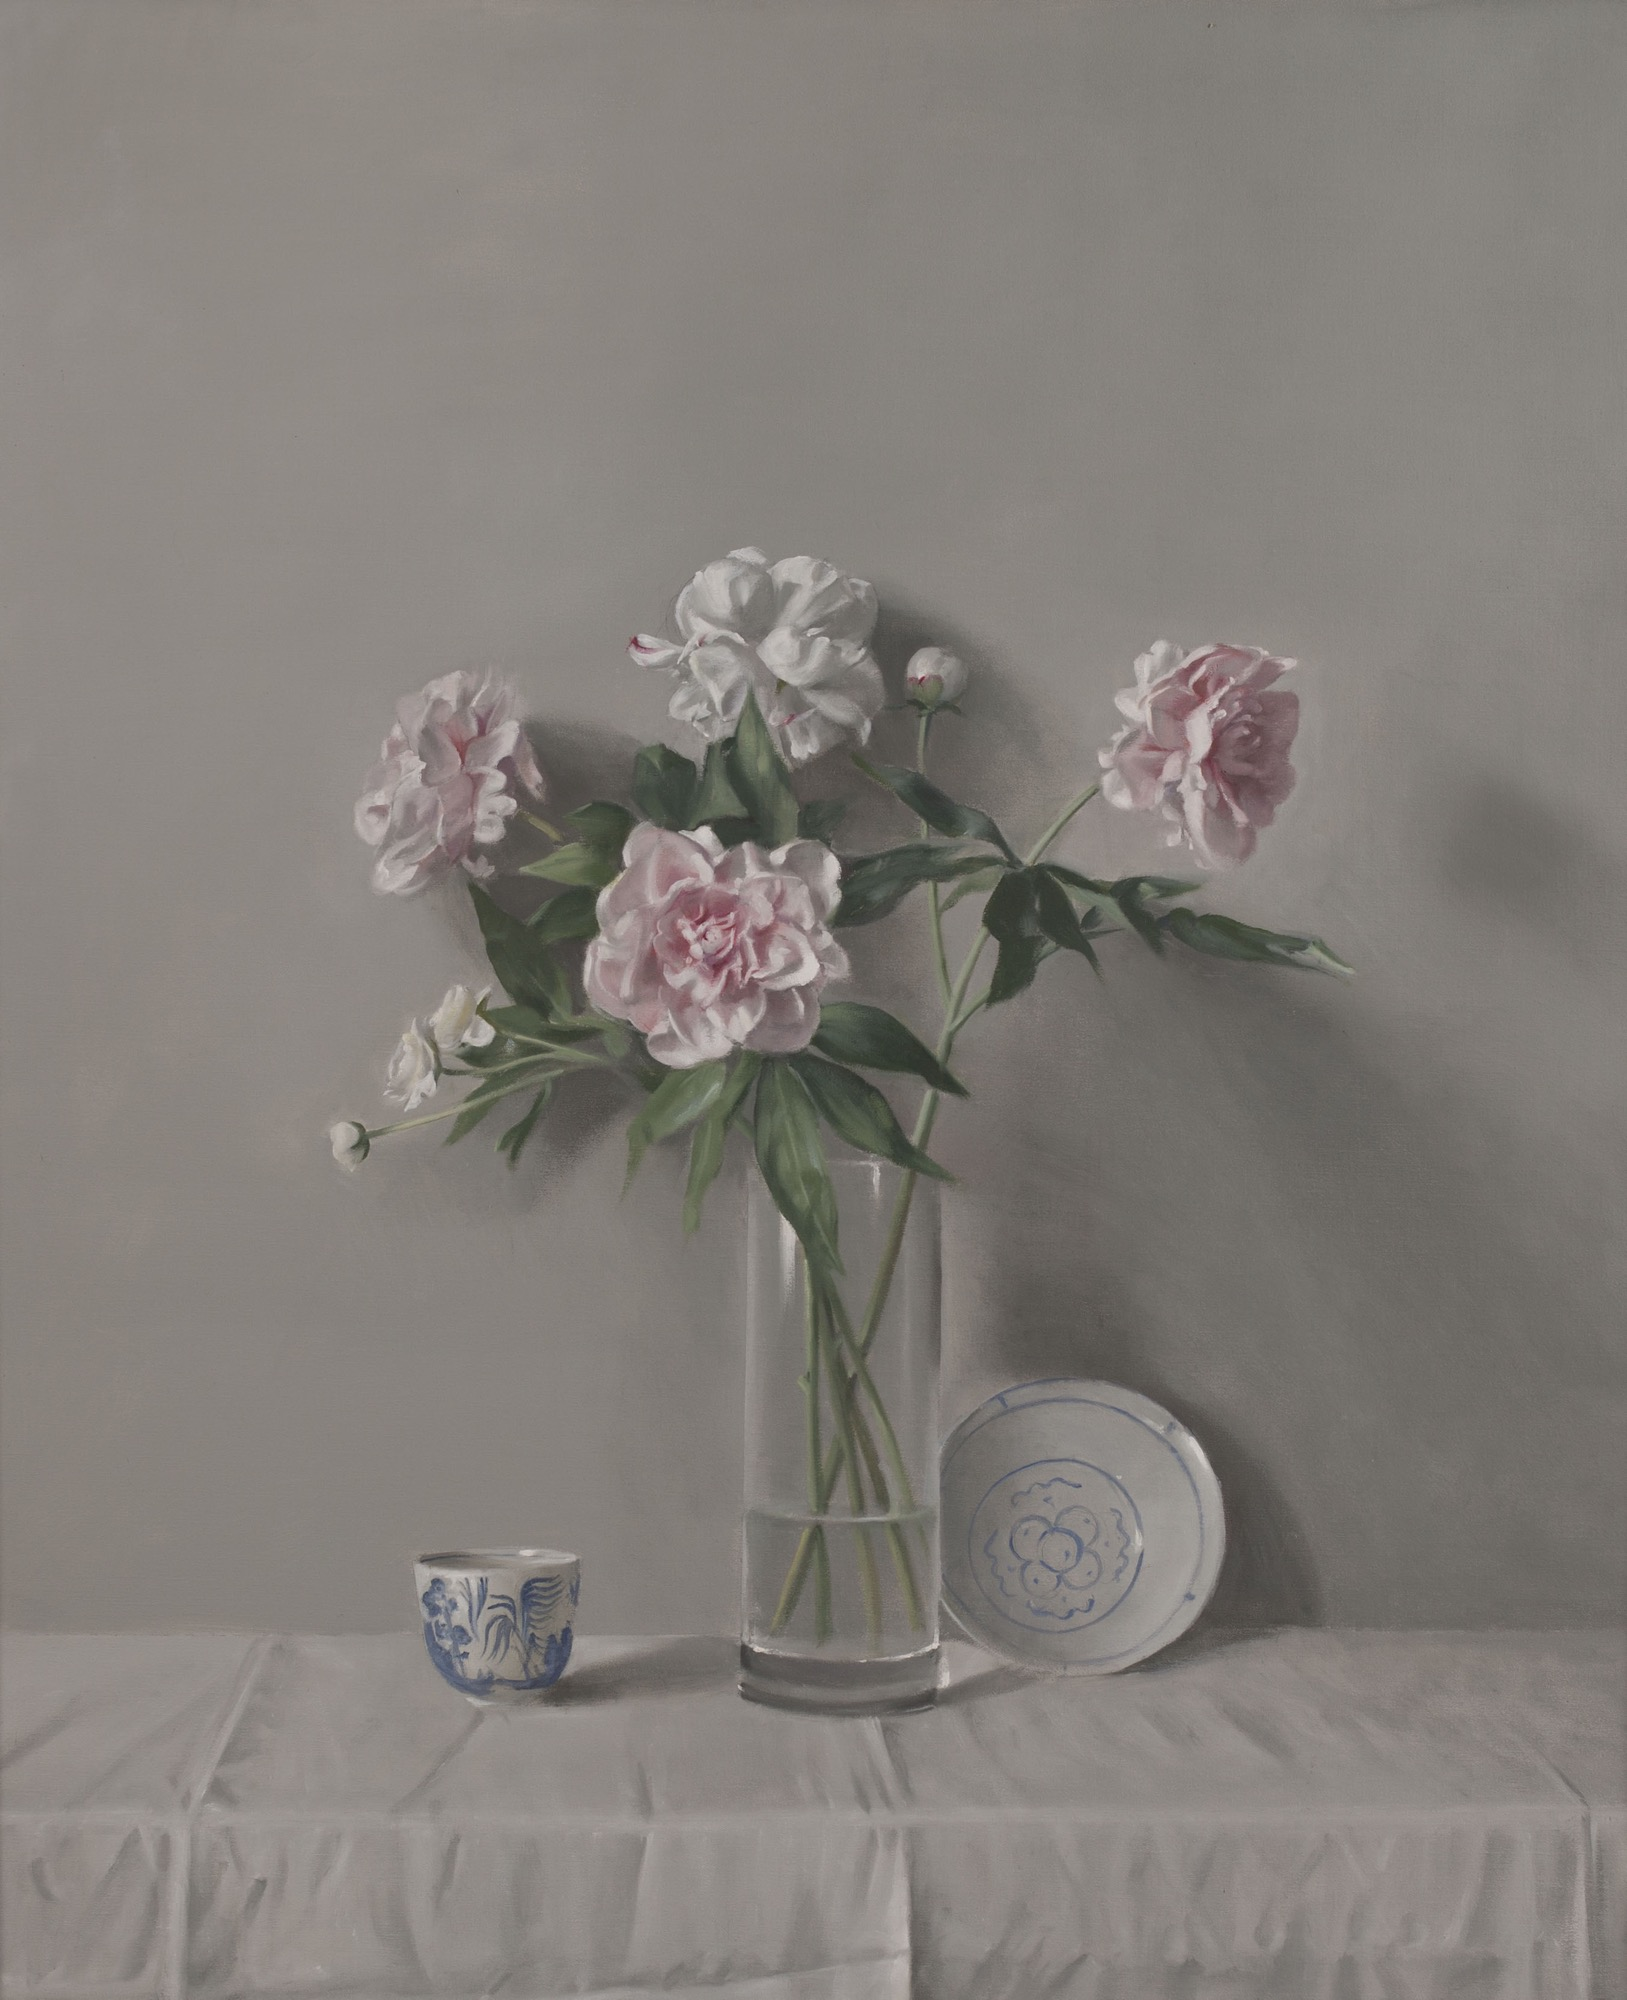 Raymond Han    Peonies with Blue and White China , 2004  Oil on linen  48 x 40 inches  121.9 x 101.6 cm